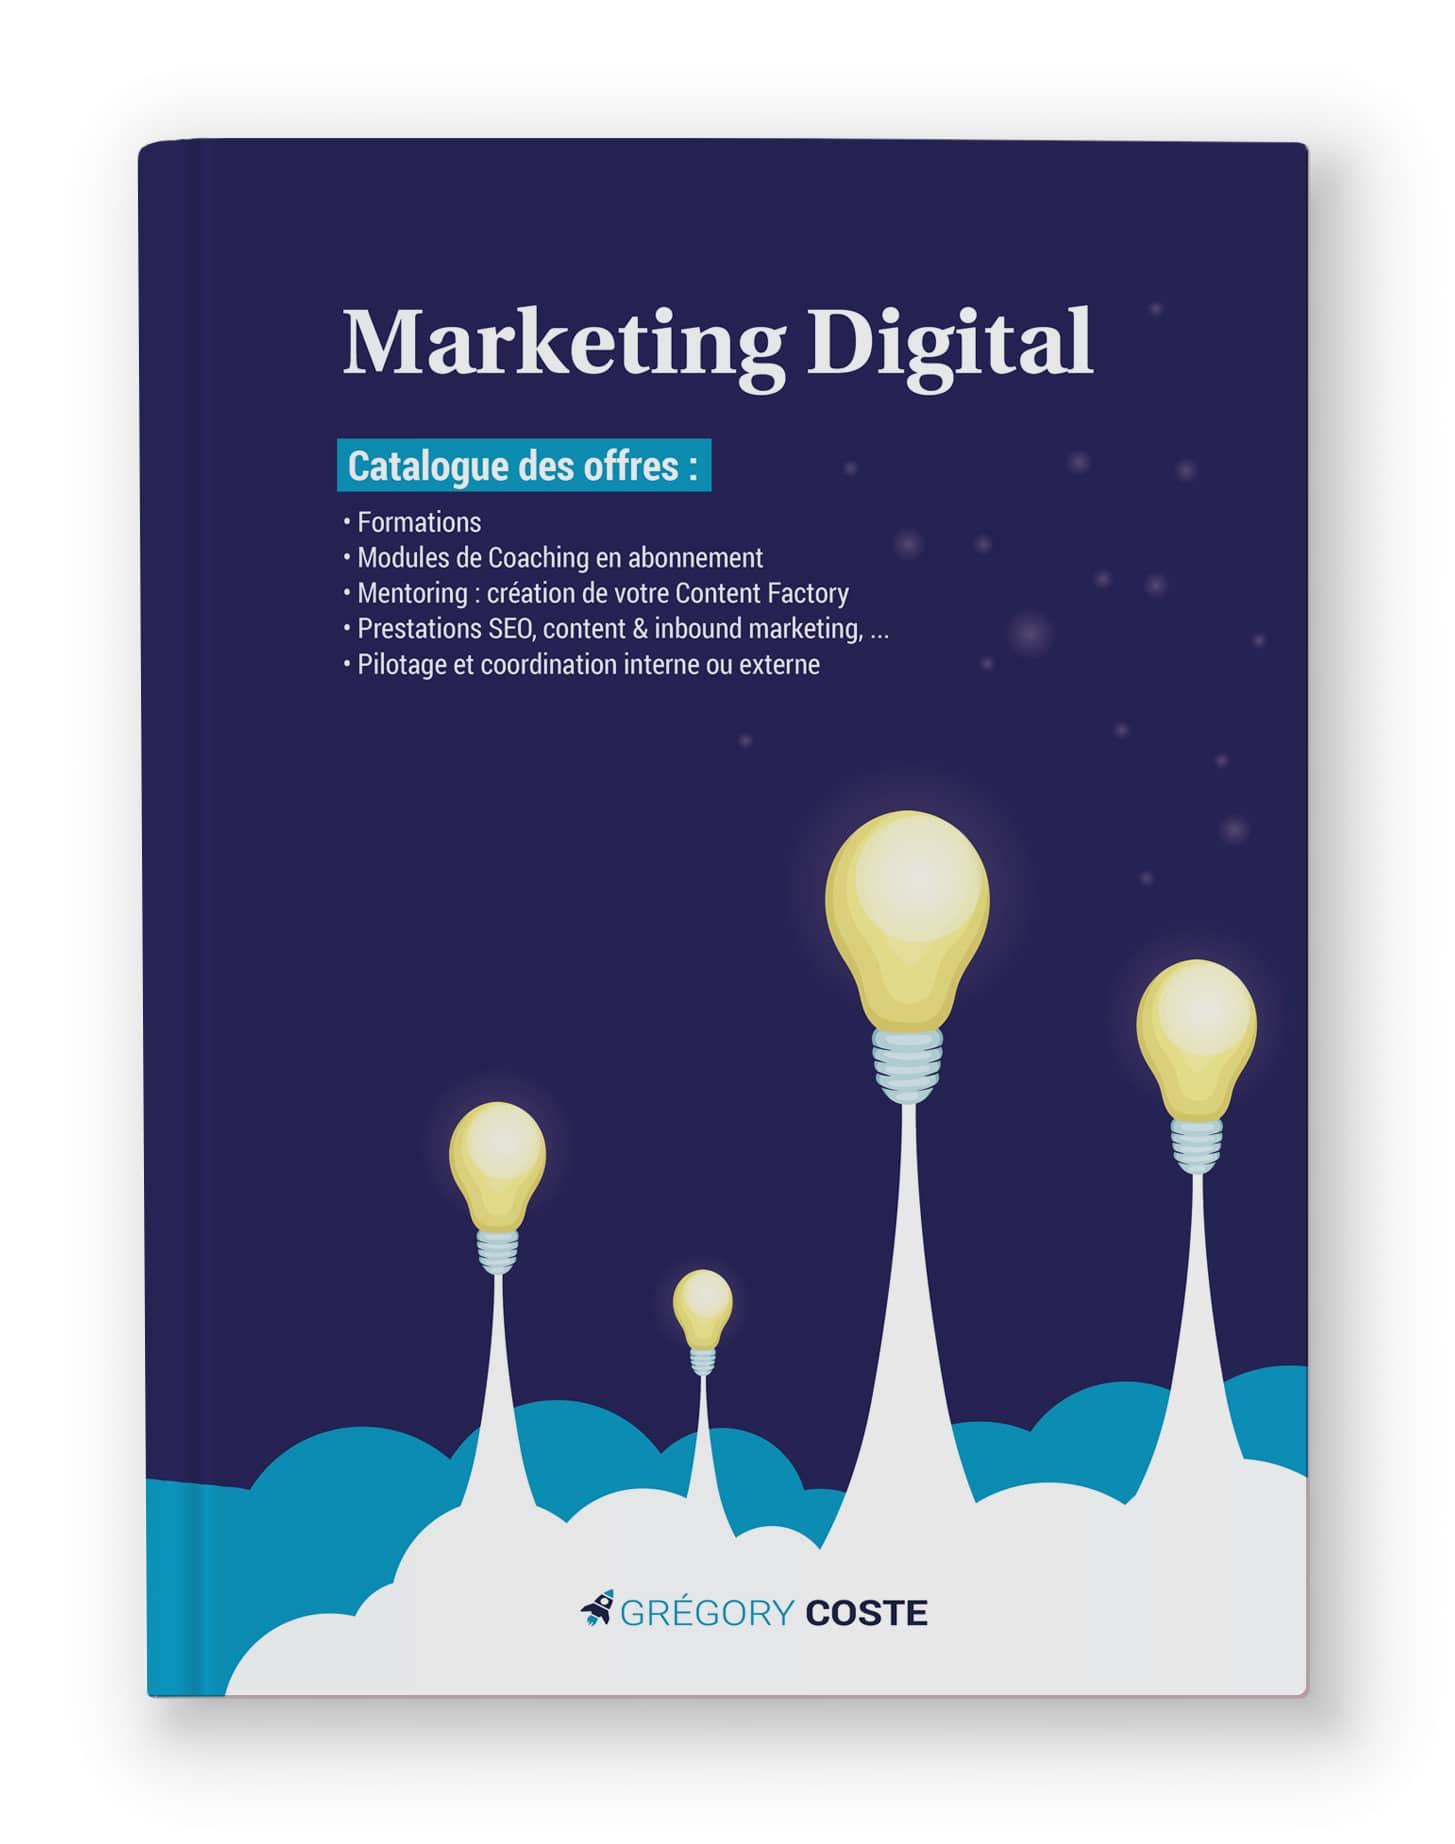 offre de services en marketing digital